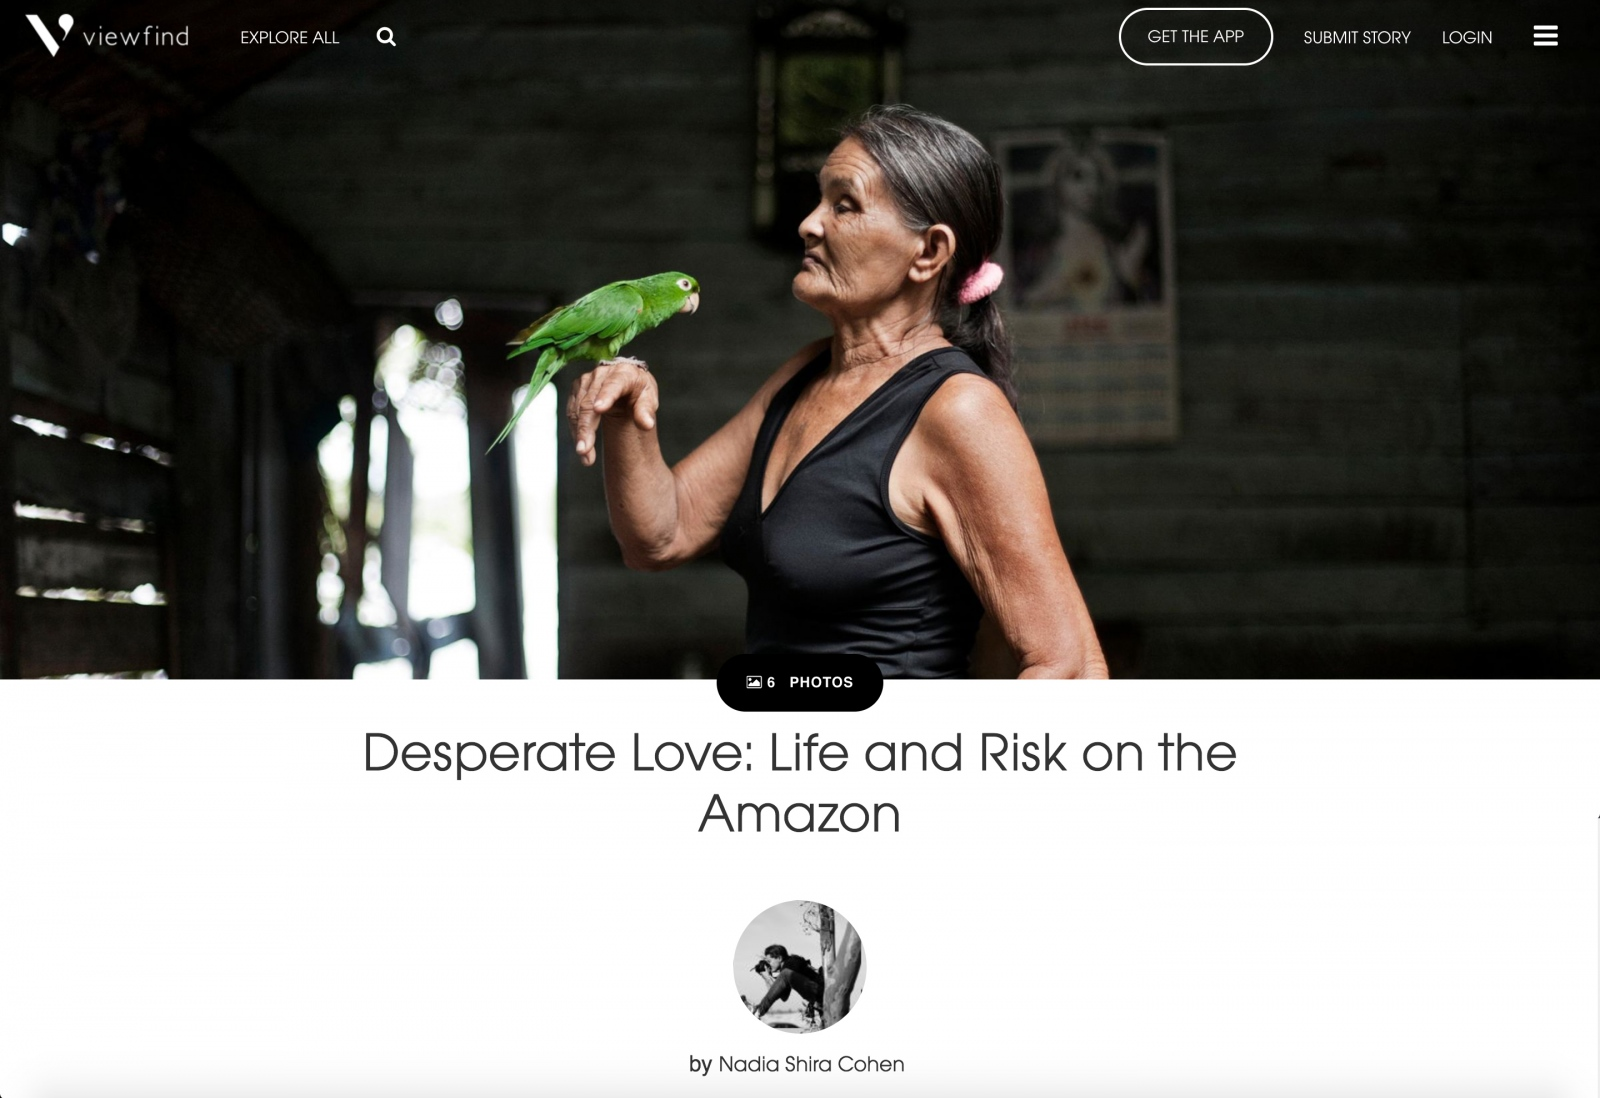 """Desperate Love: Life and Risk on the Amazon"" by Nadia Shira Cohen"